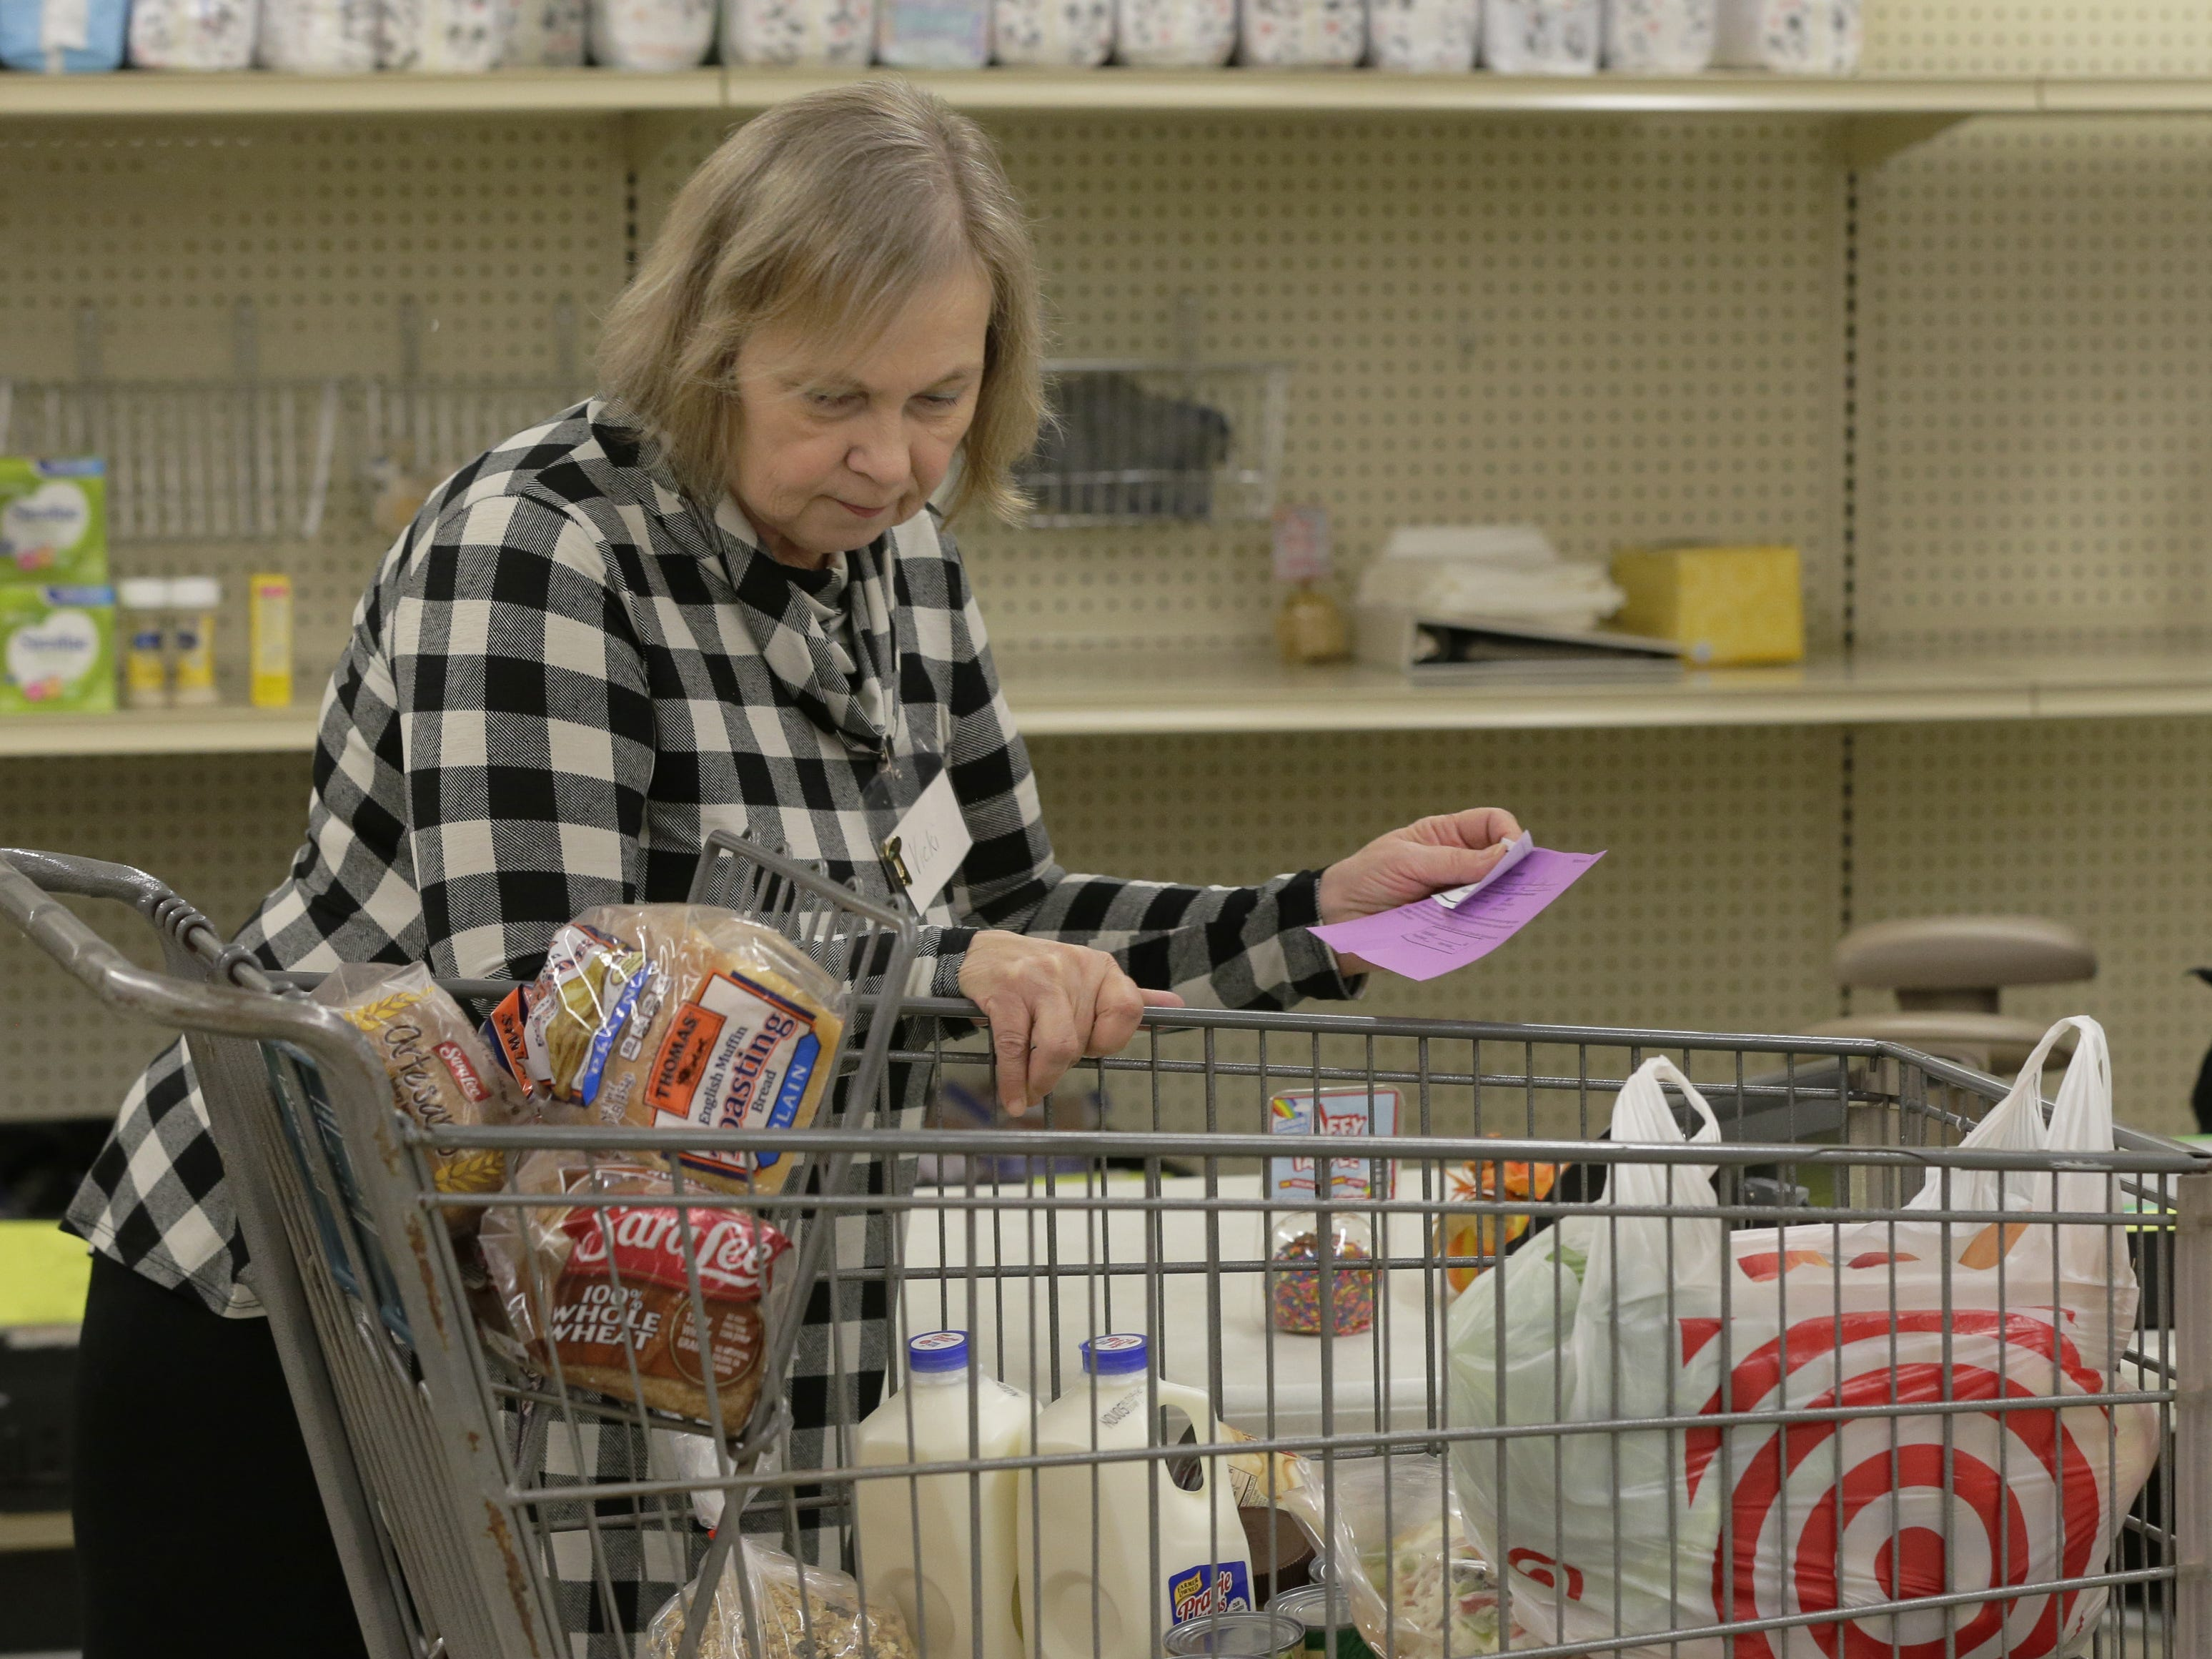 Vicki Pongratz reviews the contents of a cart while manning the checkout line Wednesday, Oct. 24, 2018, at the Oshkosh Area Community Pantry. Pongratz volunteers and uses the pantry, which serves over 2,000 families each month.